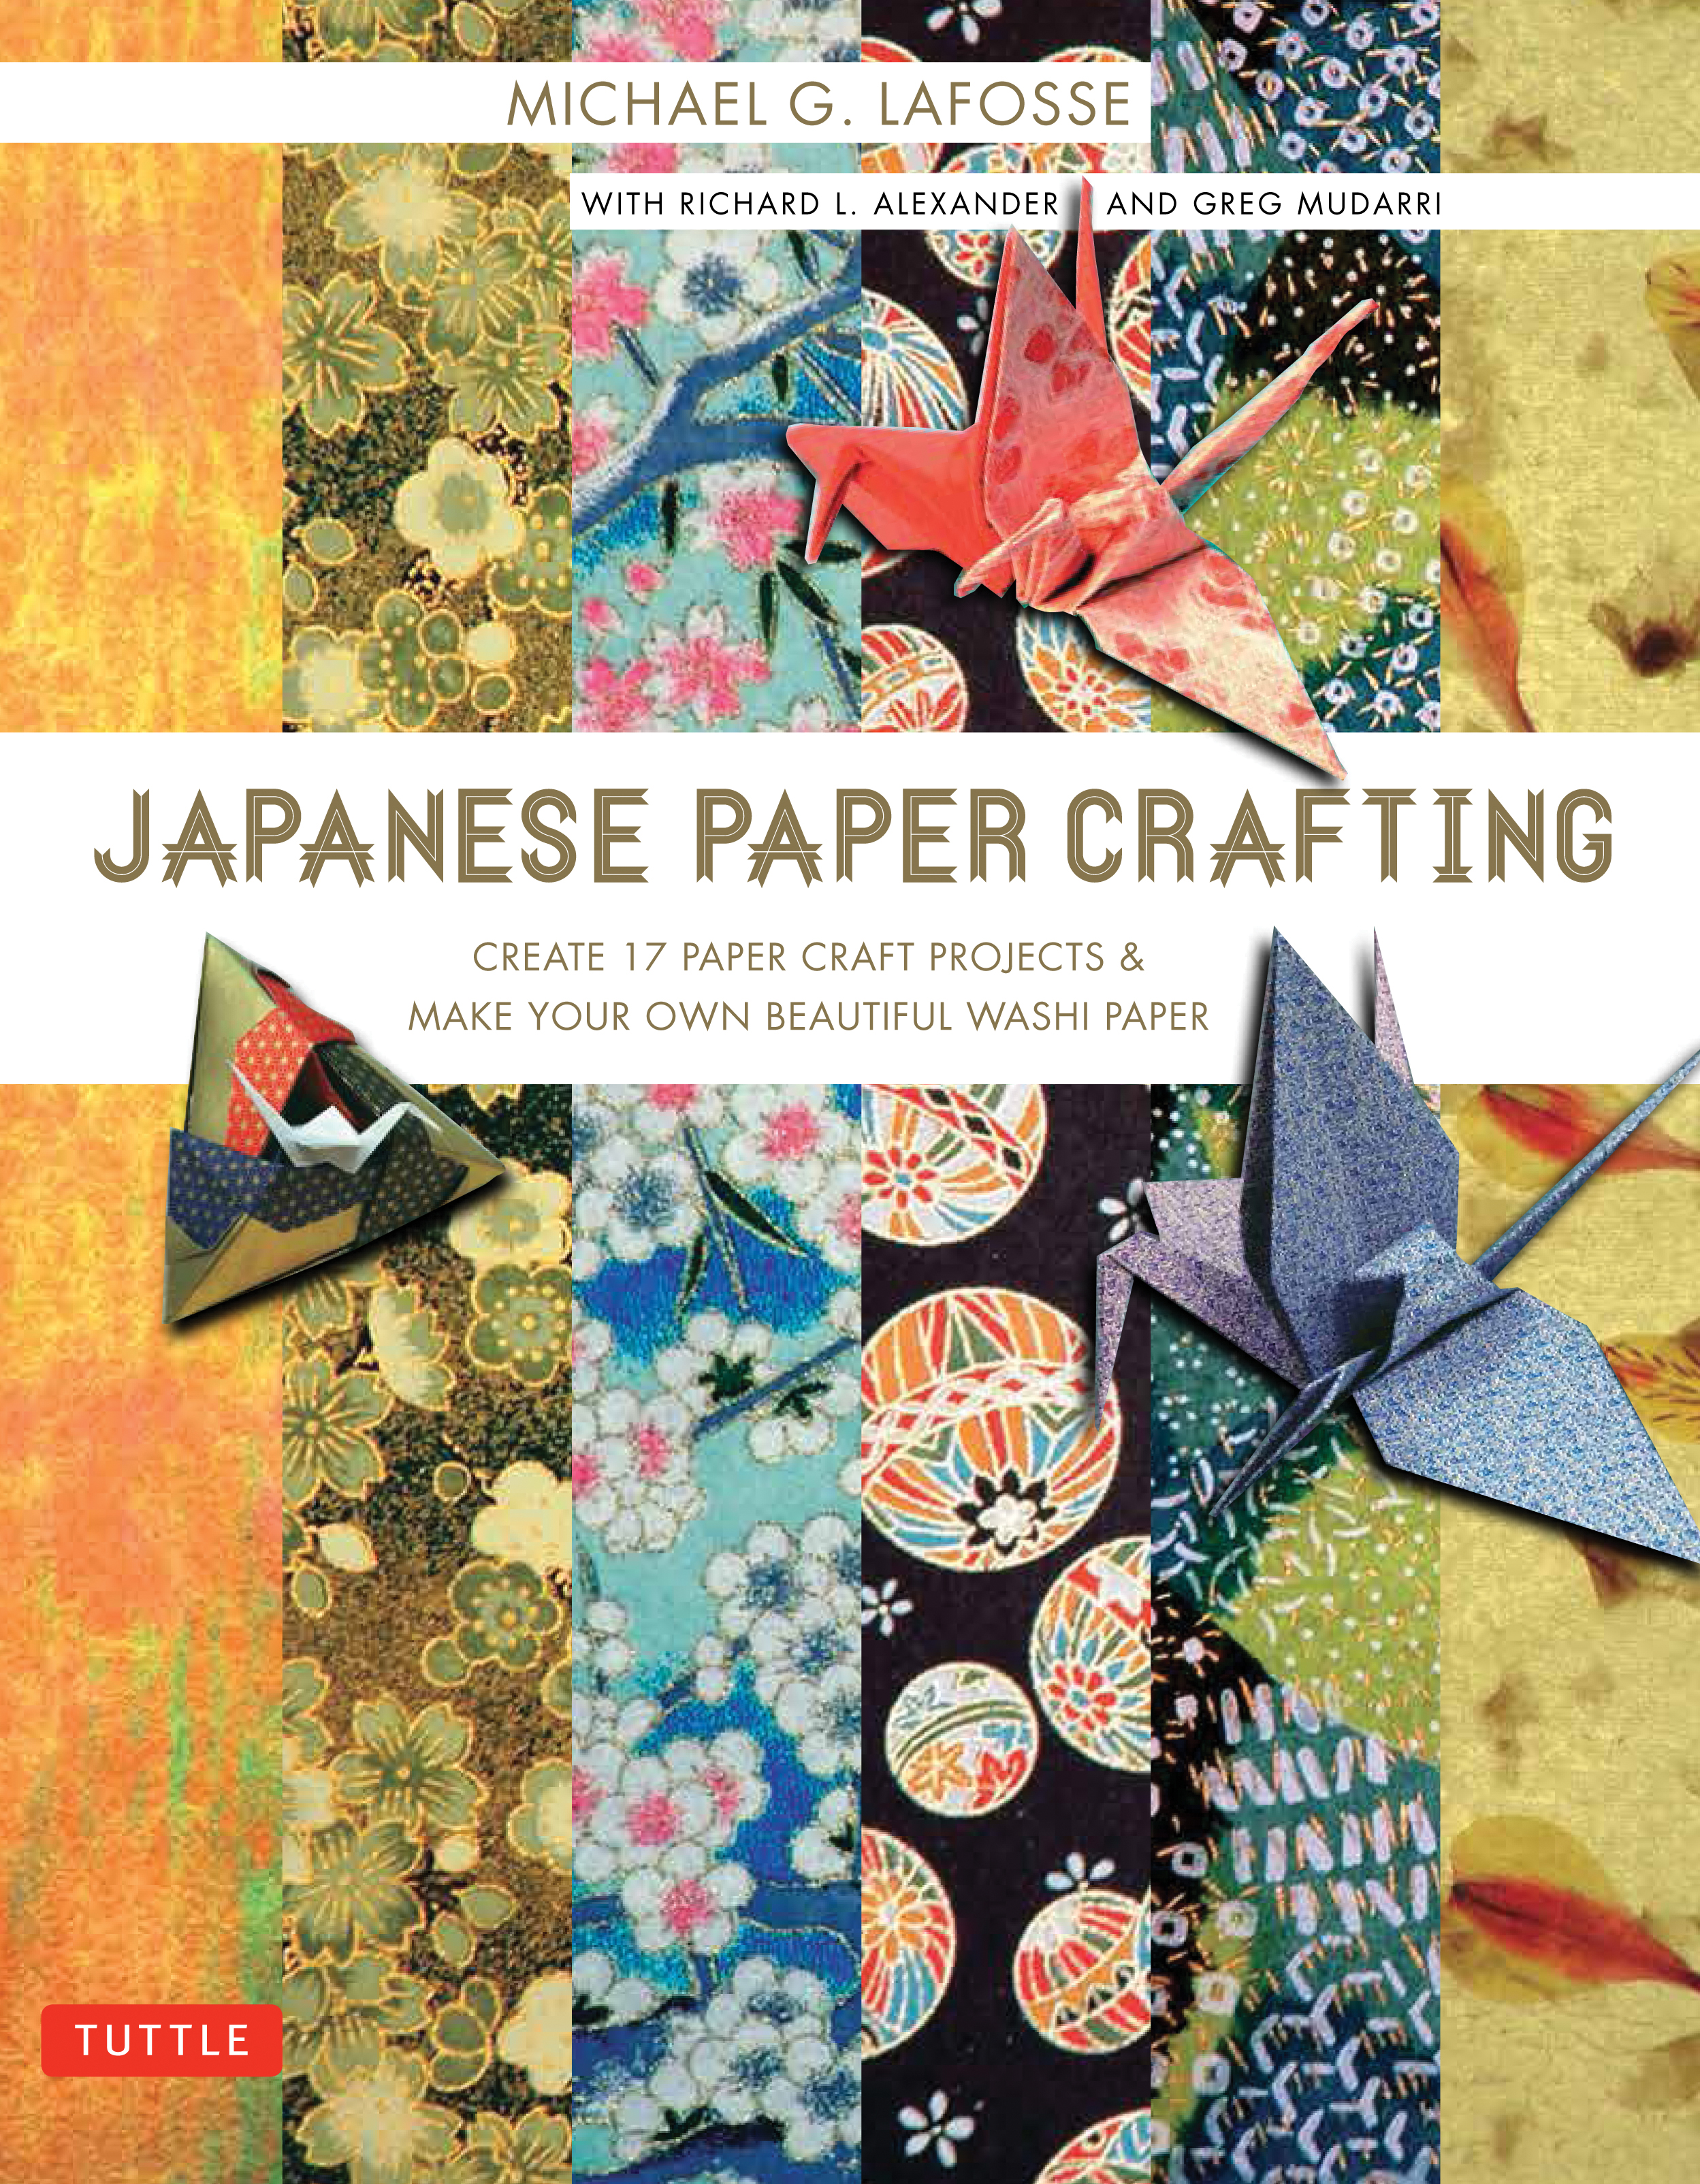 Japanese paper crafting 9784805312926 hr